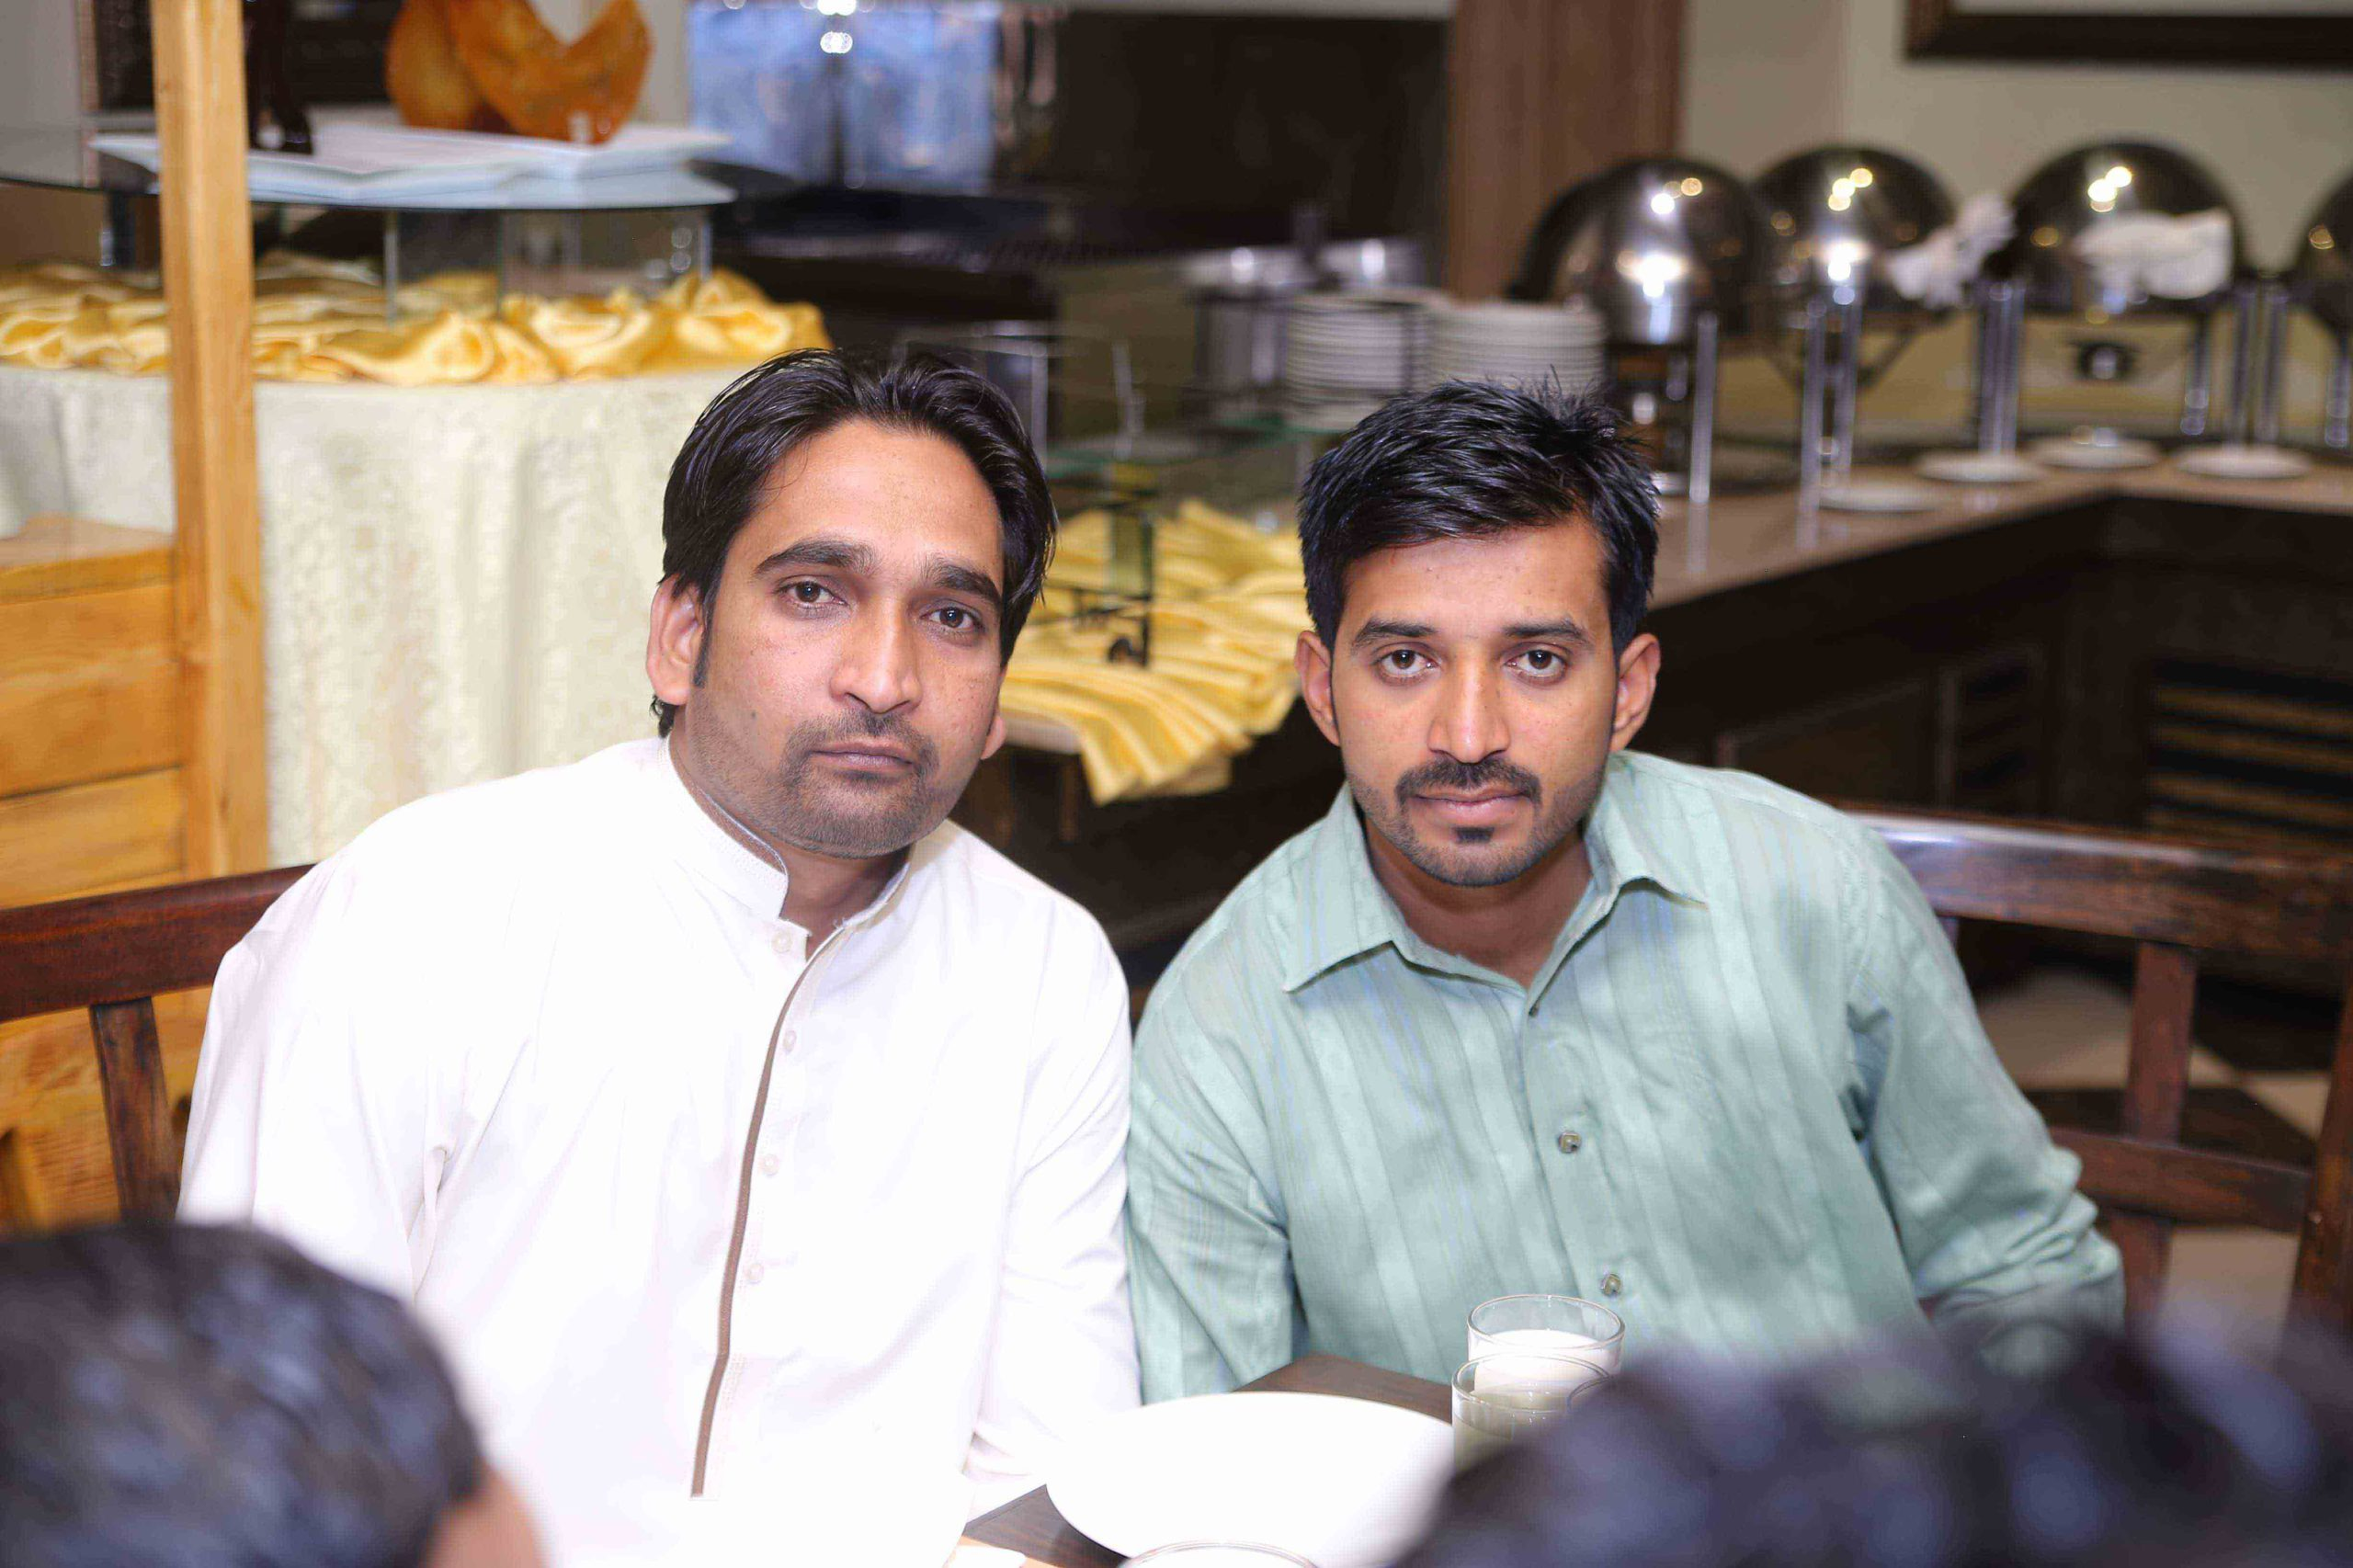 STAFF_ANNUAL_DINNER_&_IFTAR_PARTTY_33